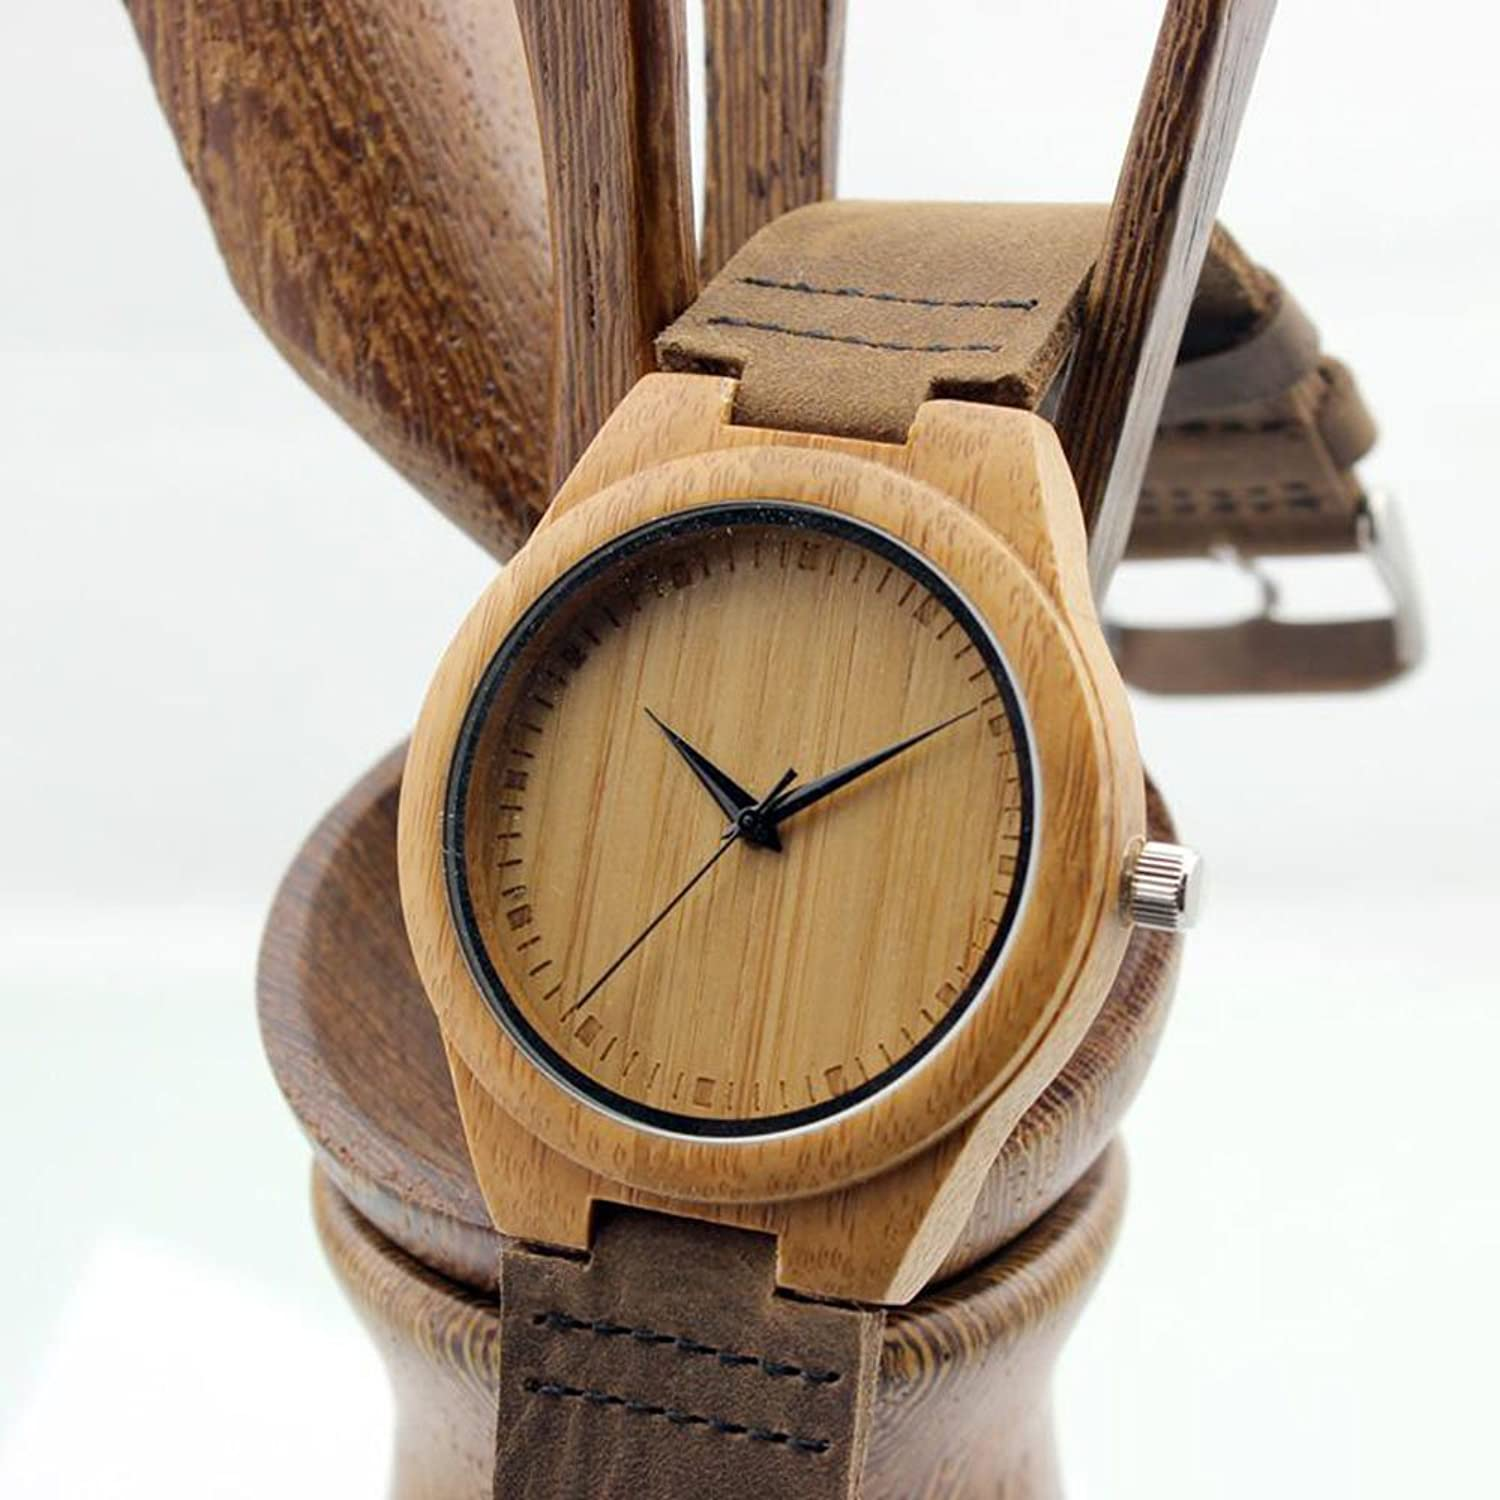 products bamboo watches s spo mens watch natural the stylish beauty all swellvision women womens